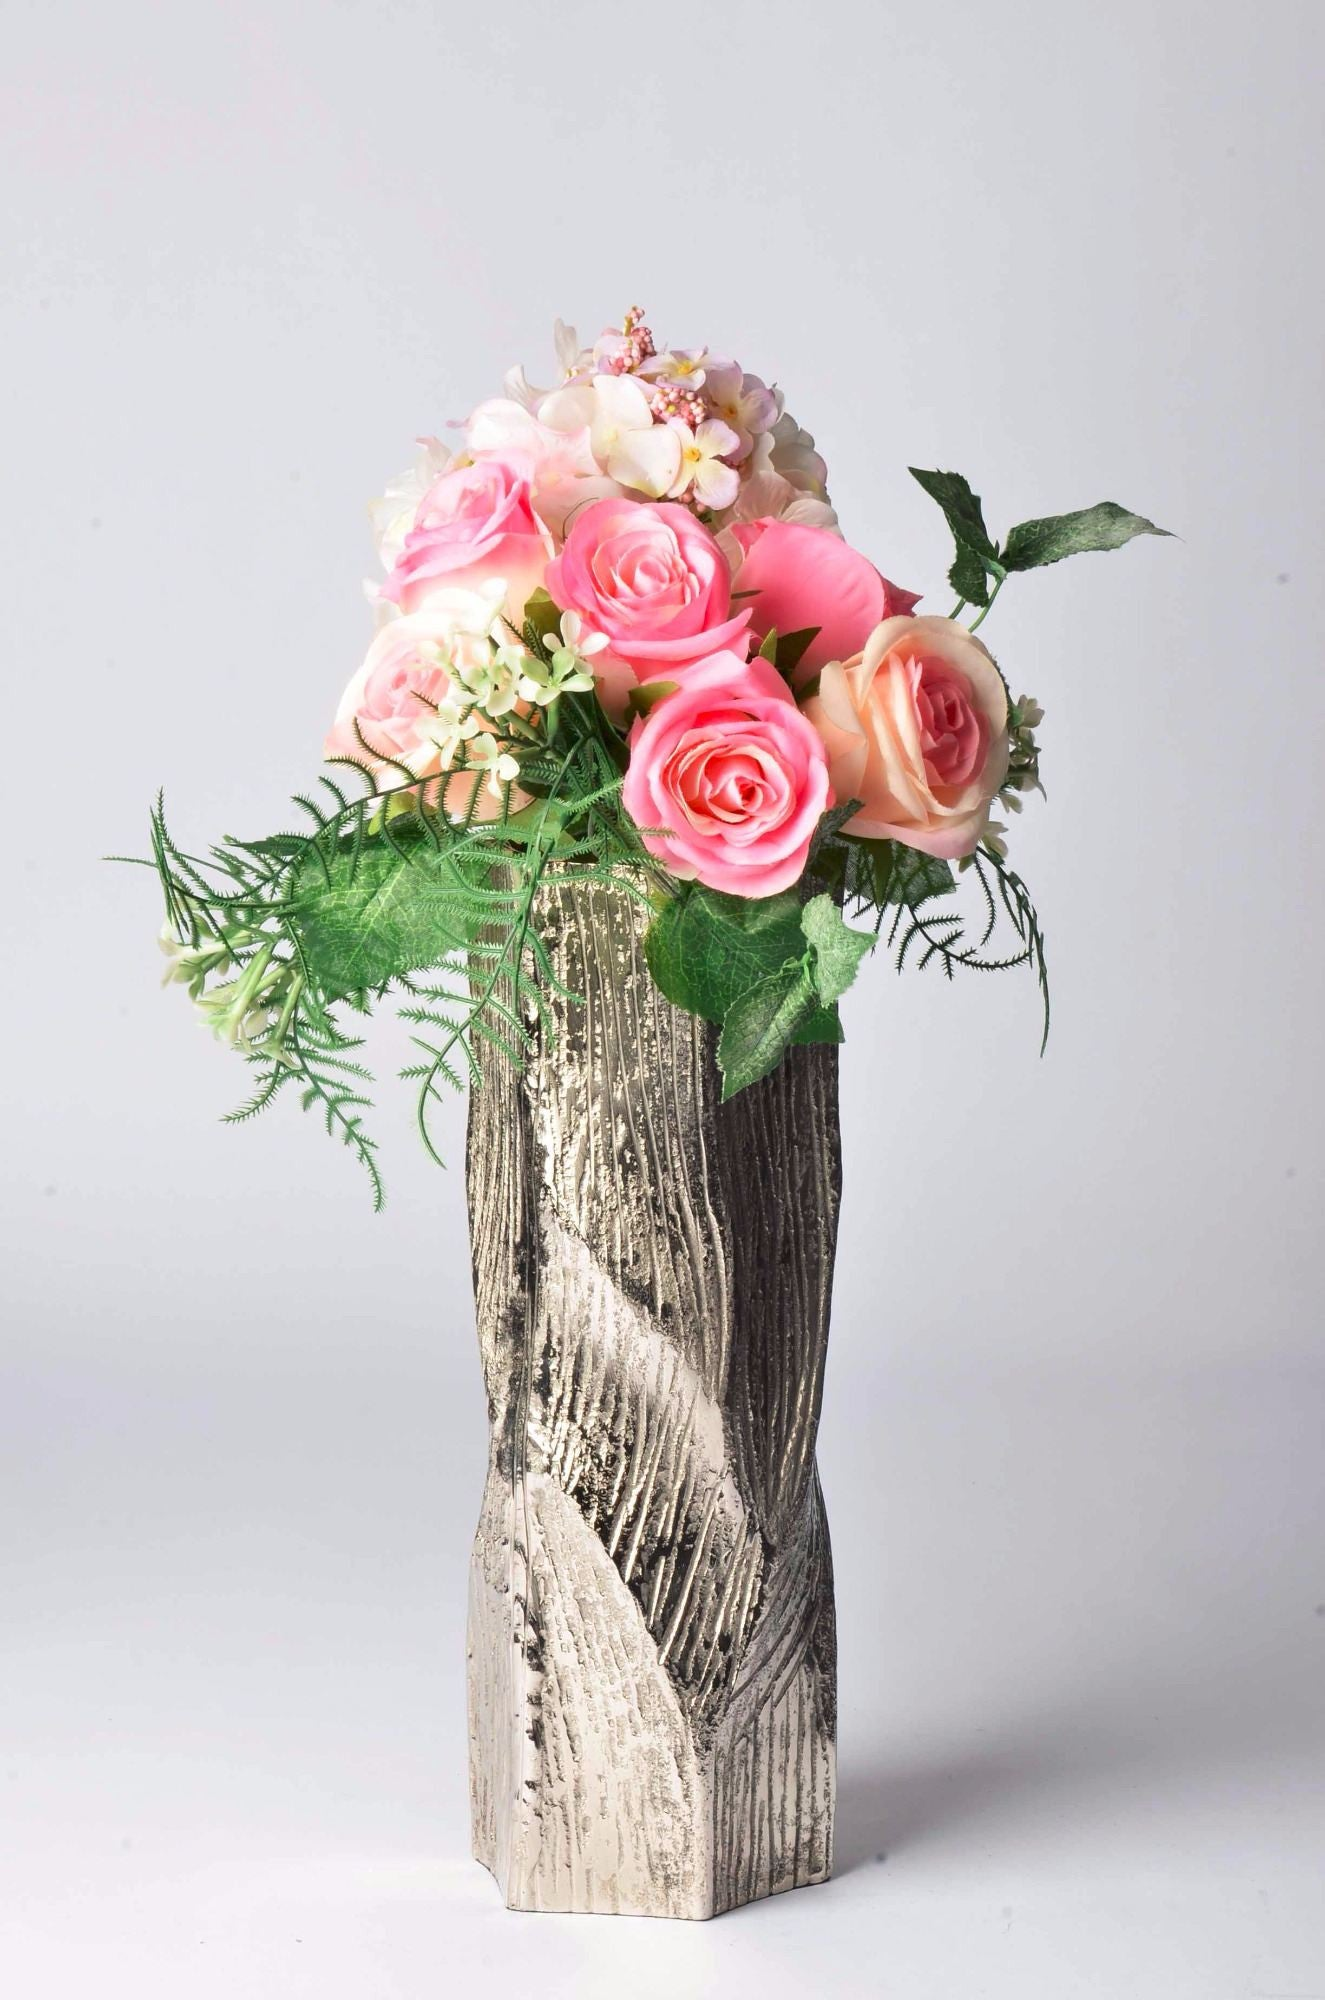 Stump - Botanicals Vase - Textured bark - Simply Roka